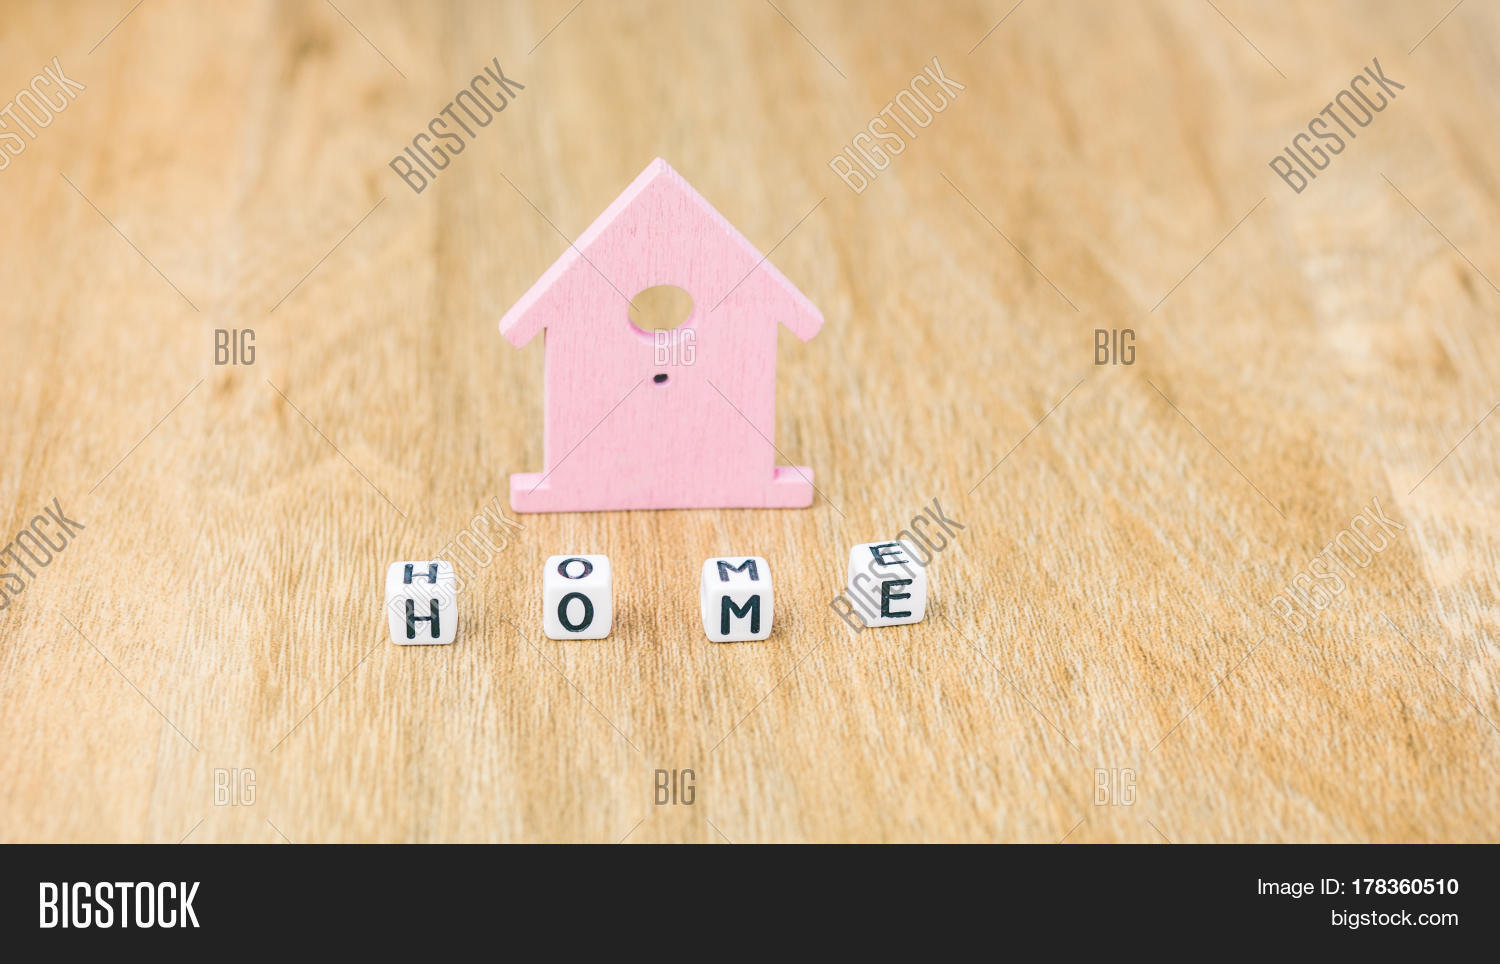 HOME Word Cube Letters Image & Photo (Free Trial) | Bigstock